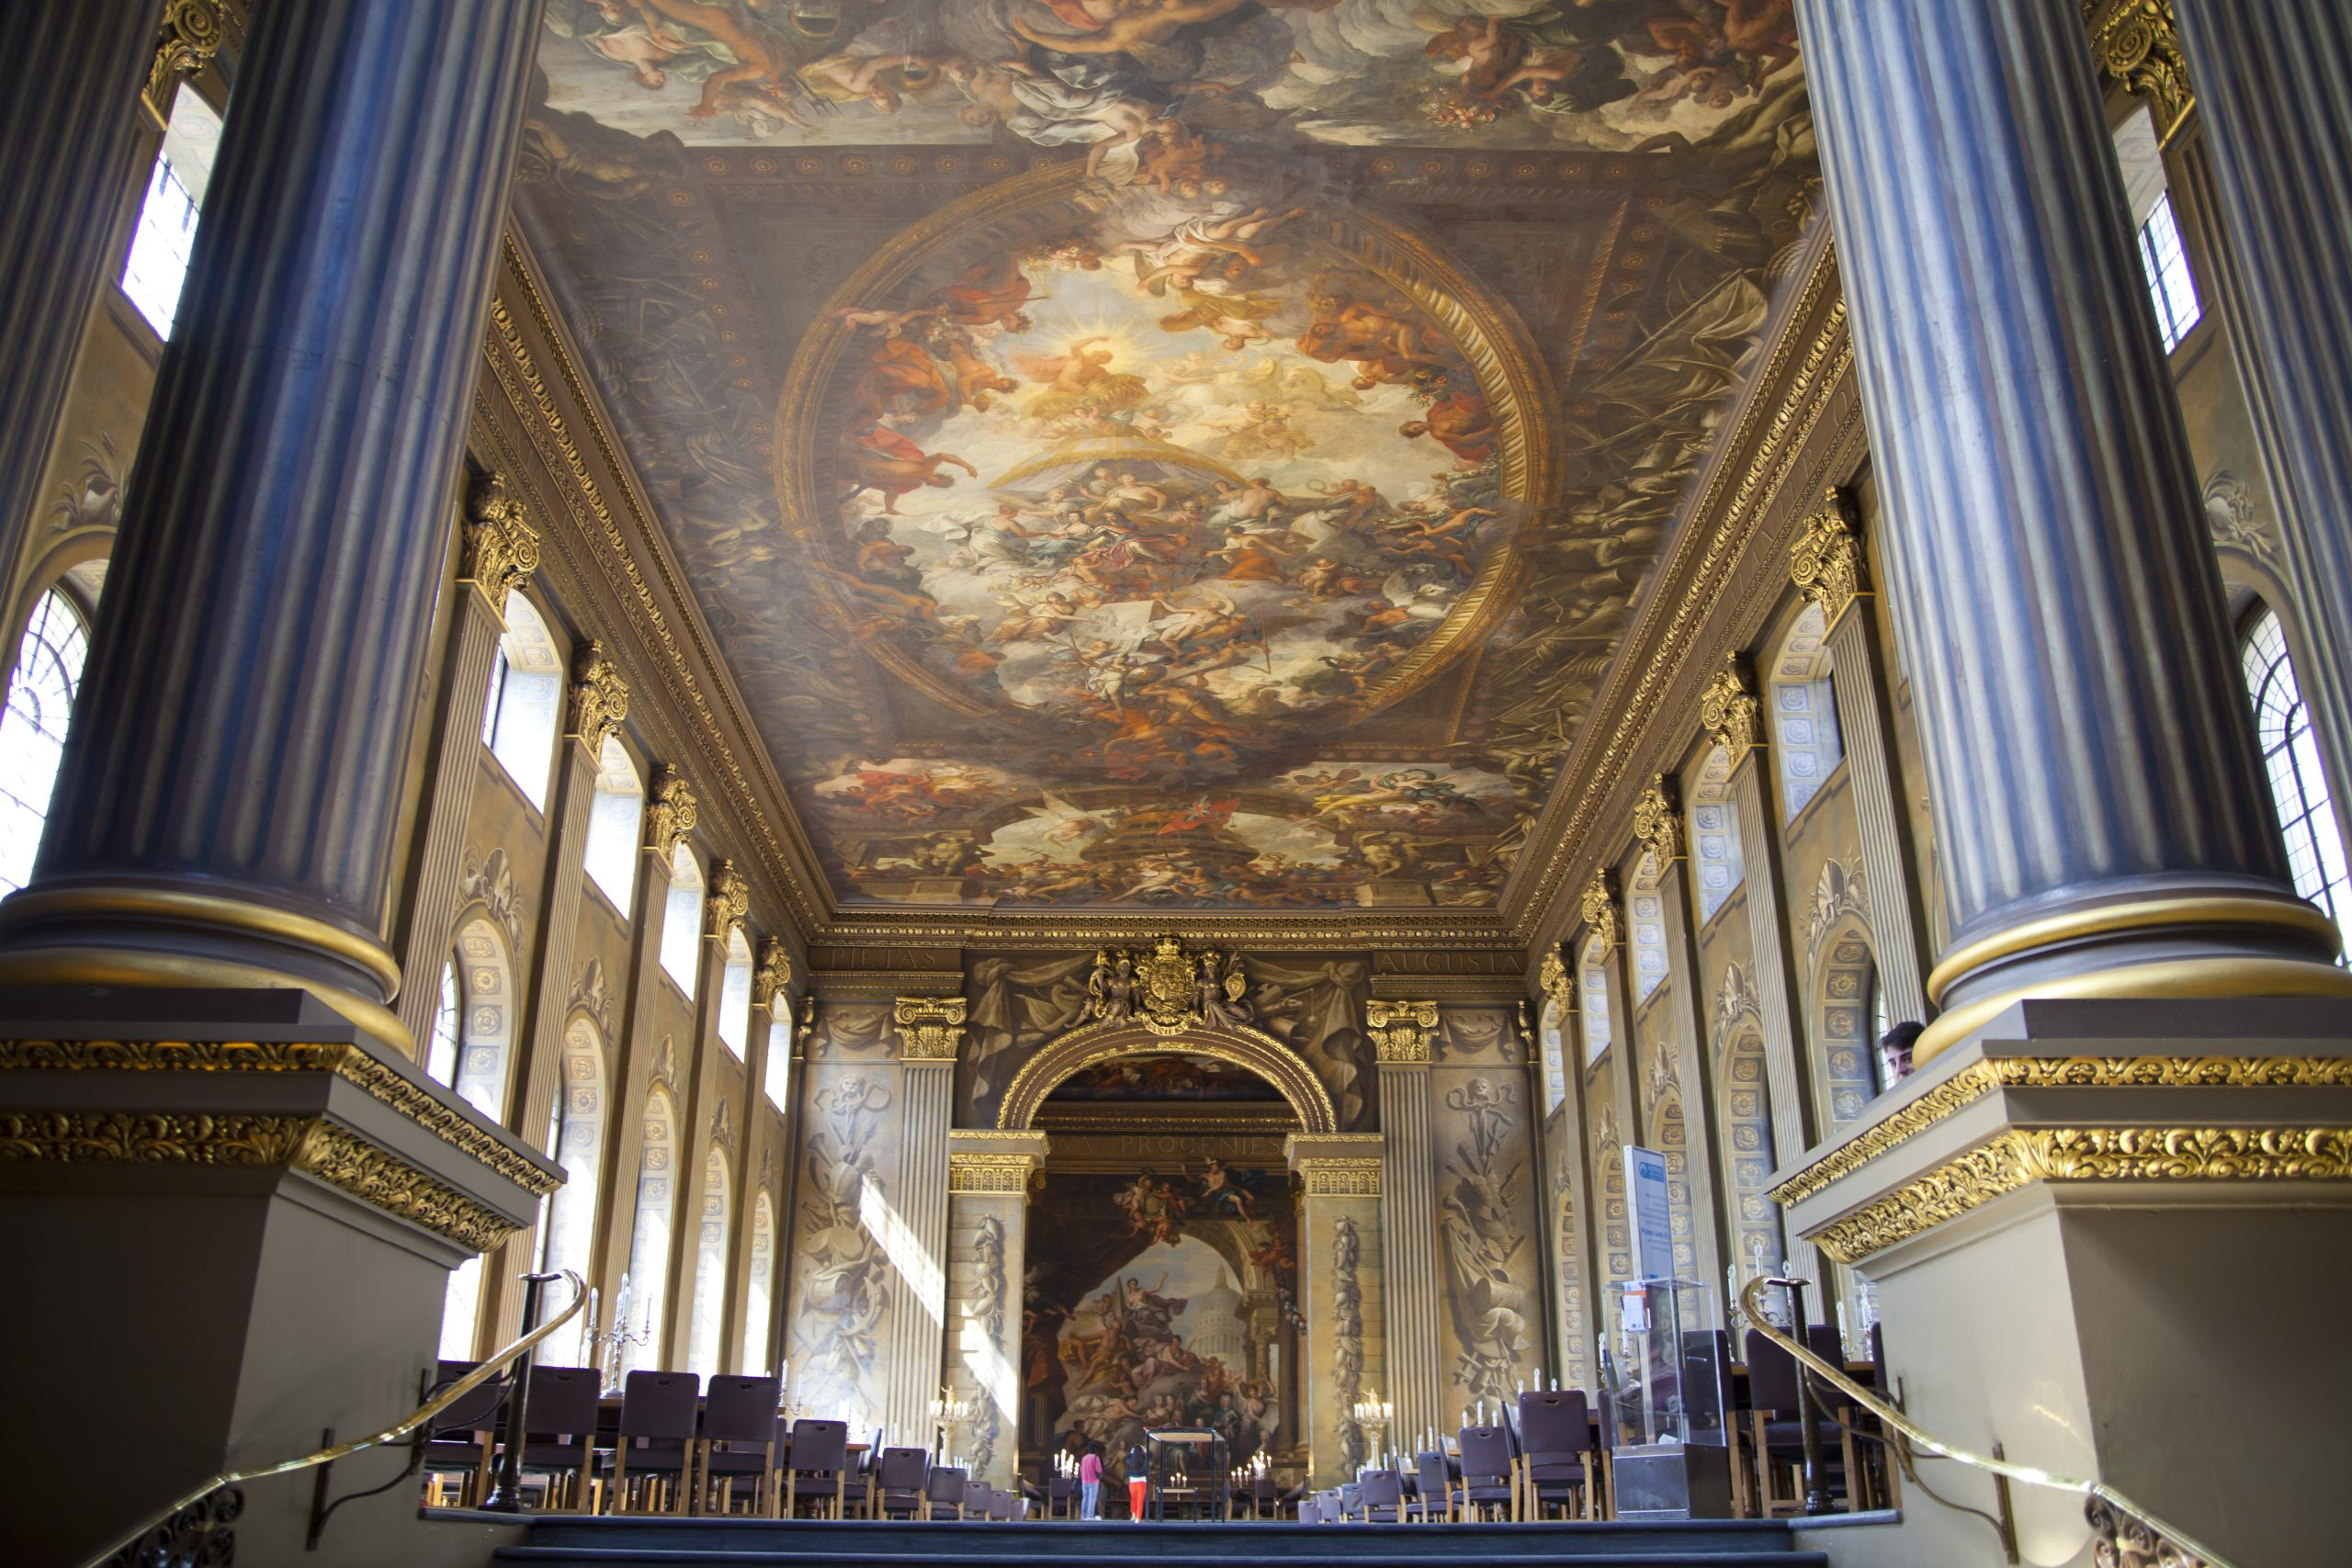 The Painted Hall in London is very opulent